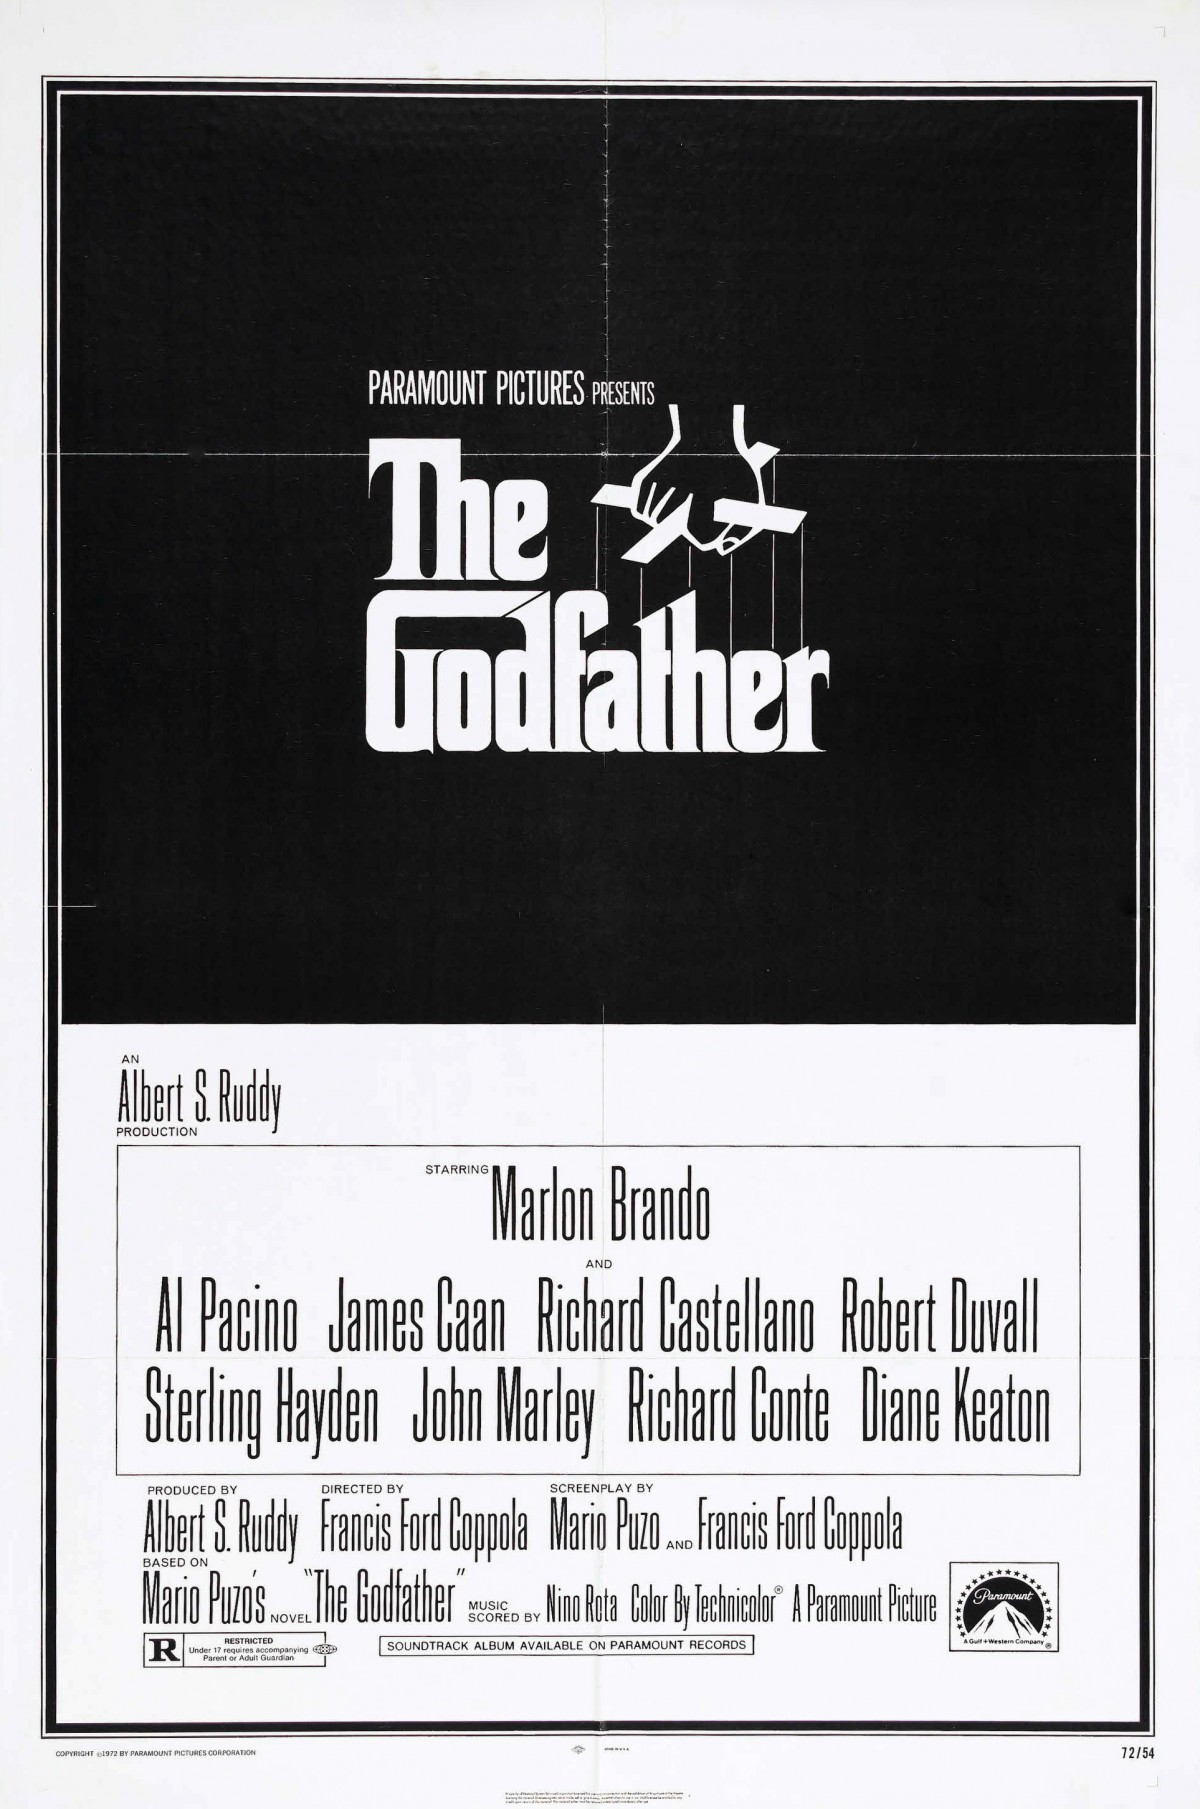 76. The Godfather (1972)